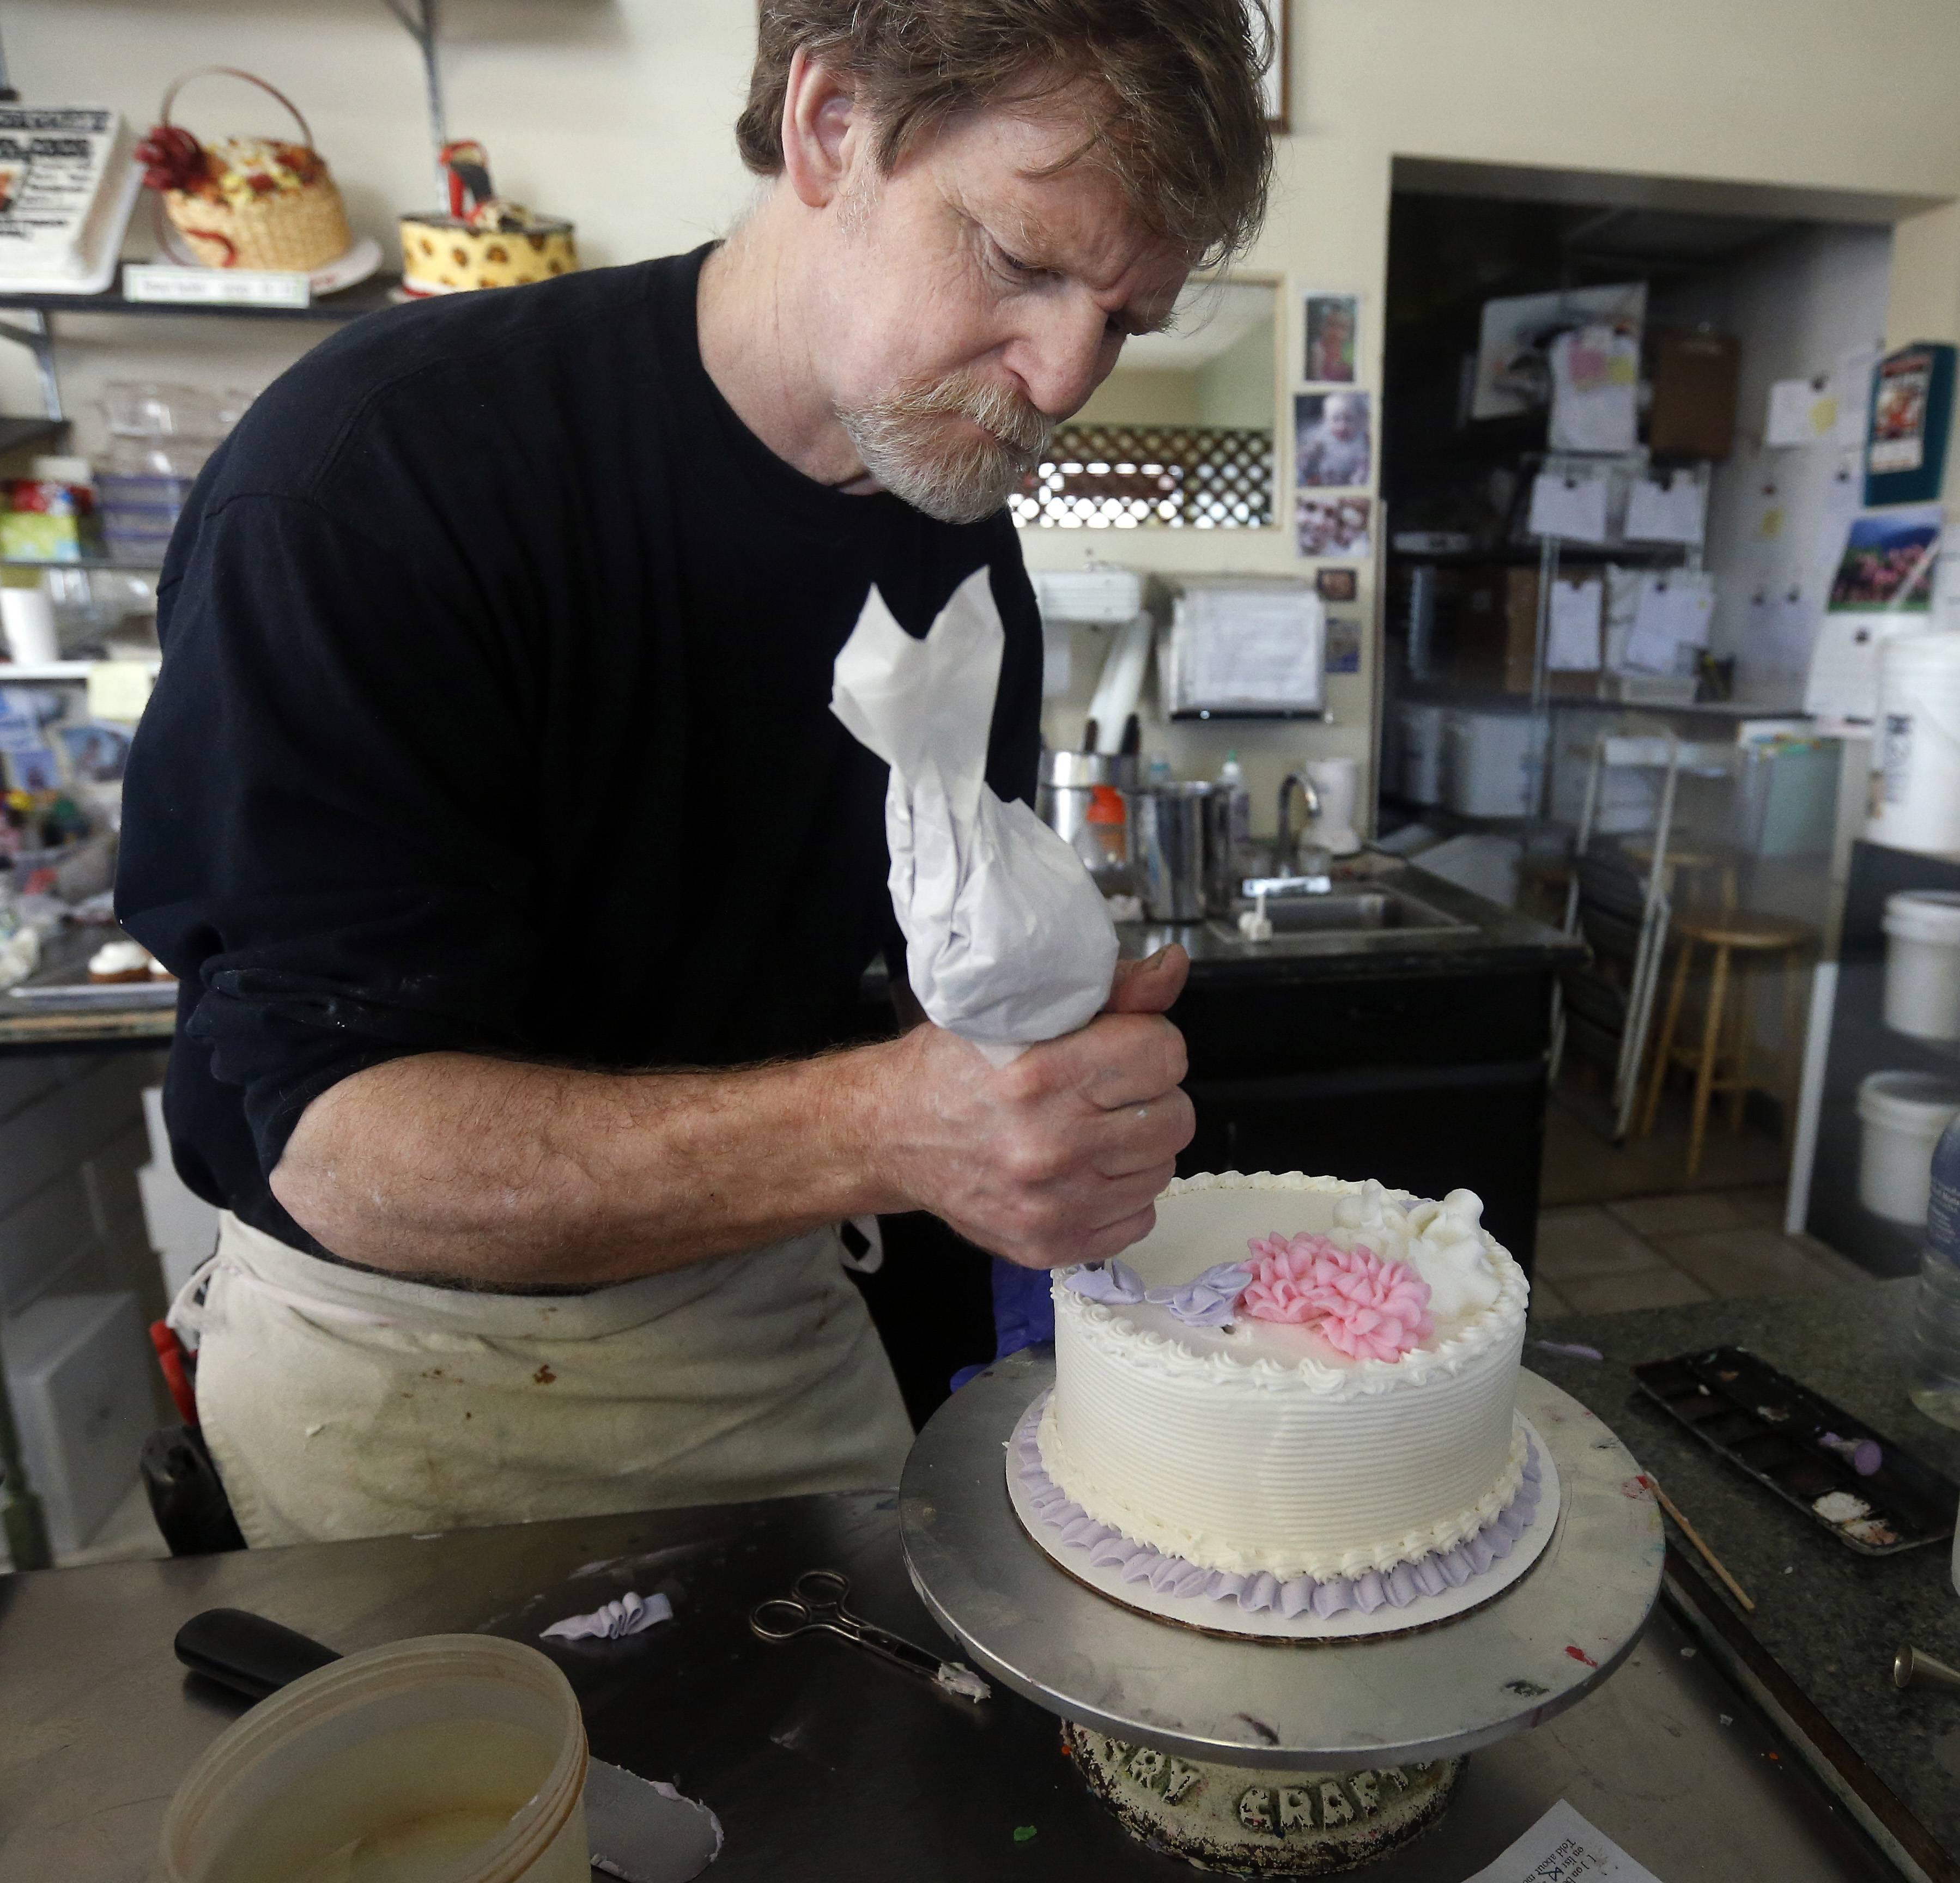 Masterpiece Cakeshop owner Jack Phillips decorates a cake inside his store in Lakewood, Colo. Phillips is appealing a recent ruling against him in a legal complaint filed with the Colorado Civil Rights Commission by a gay couple he refused to make a wedding cake for, based on his religious beliefs.